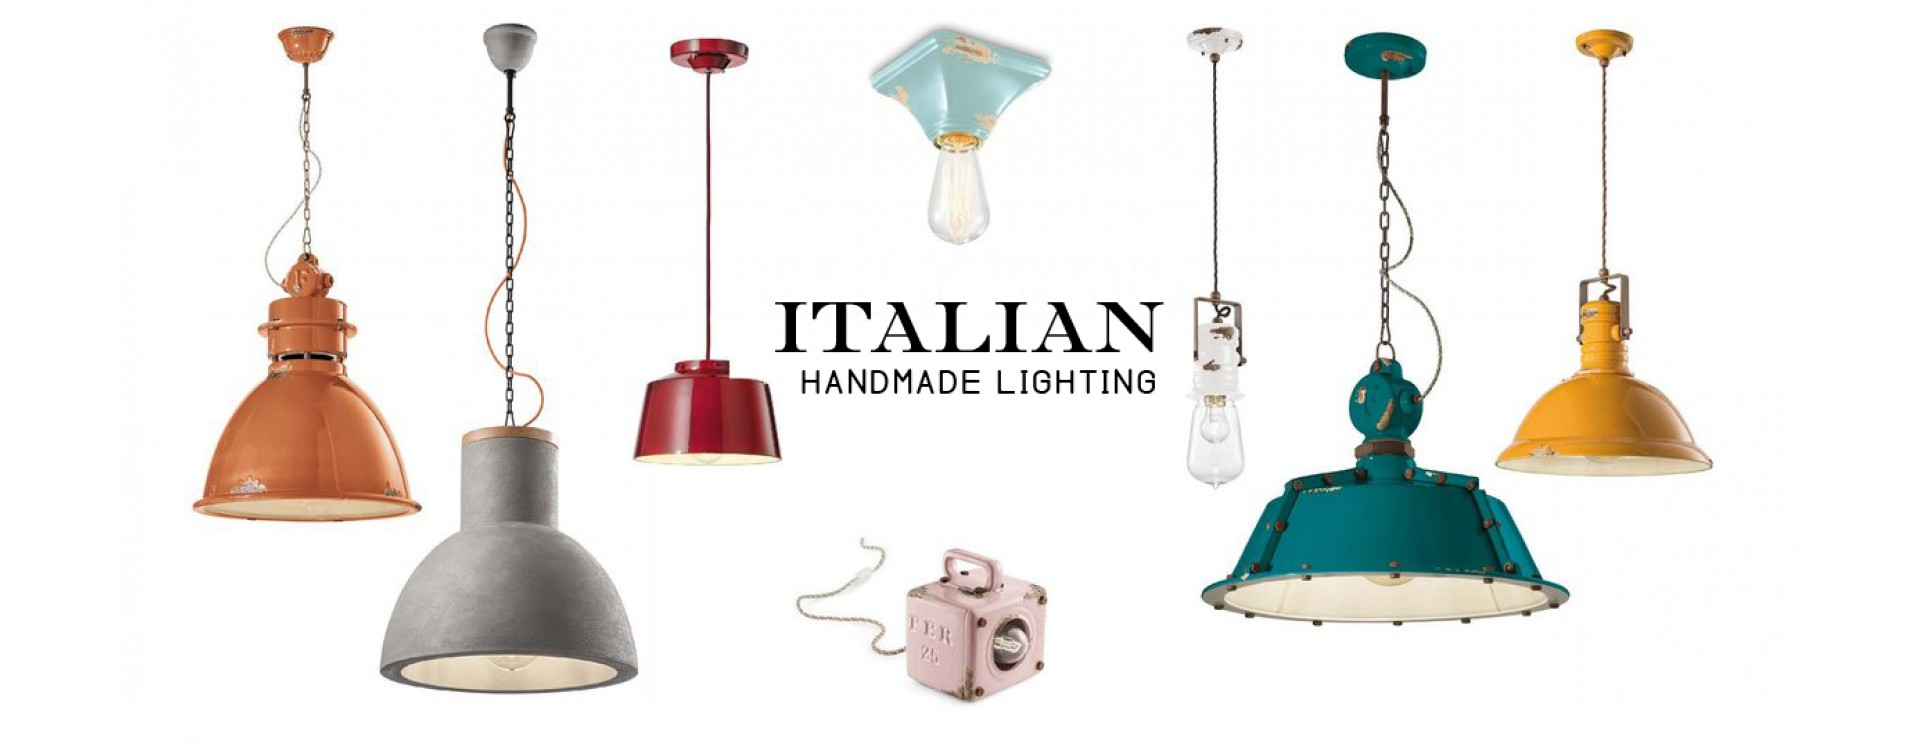 Italian Handmade Lighting